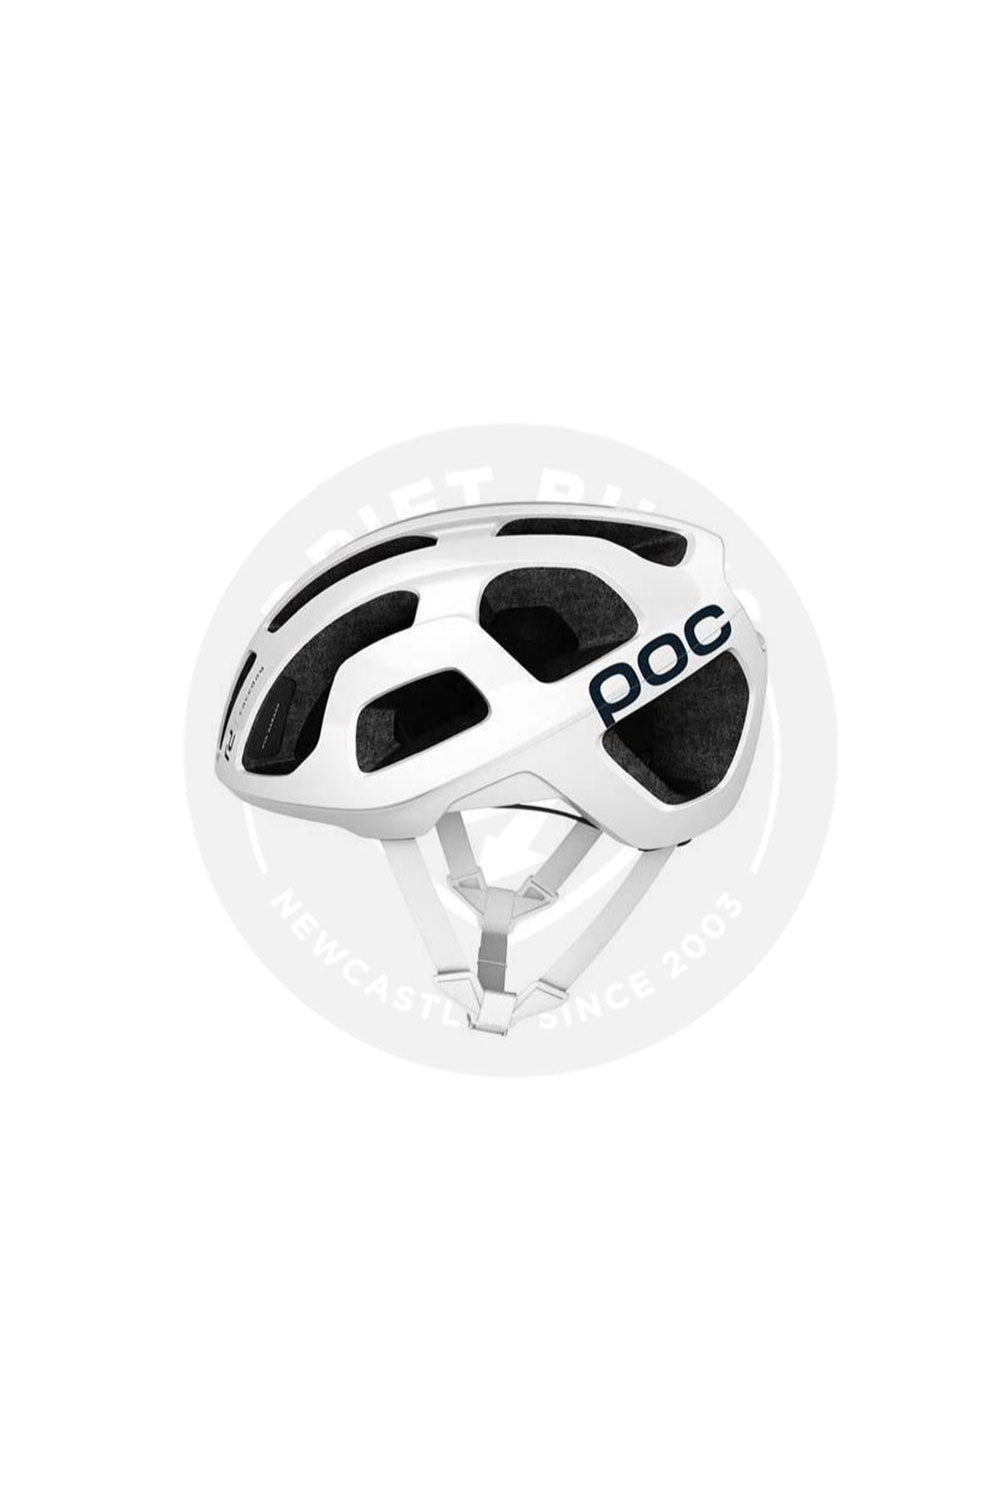 POC Octal Raceday Adult Road Bike Helmet Navy White